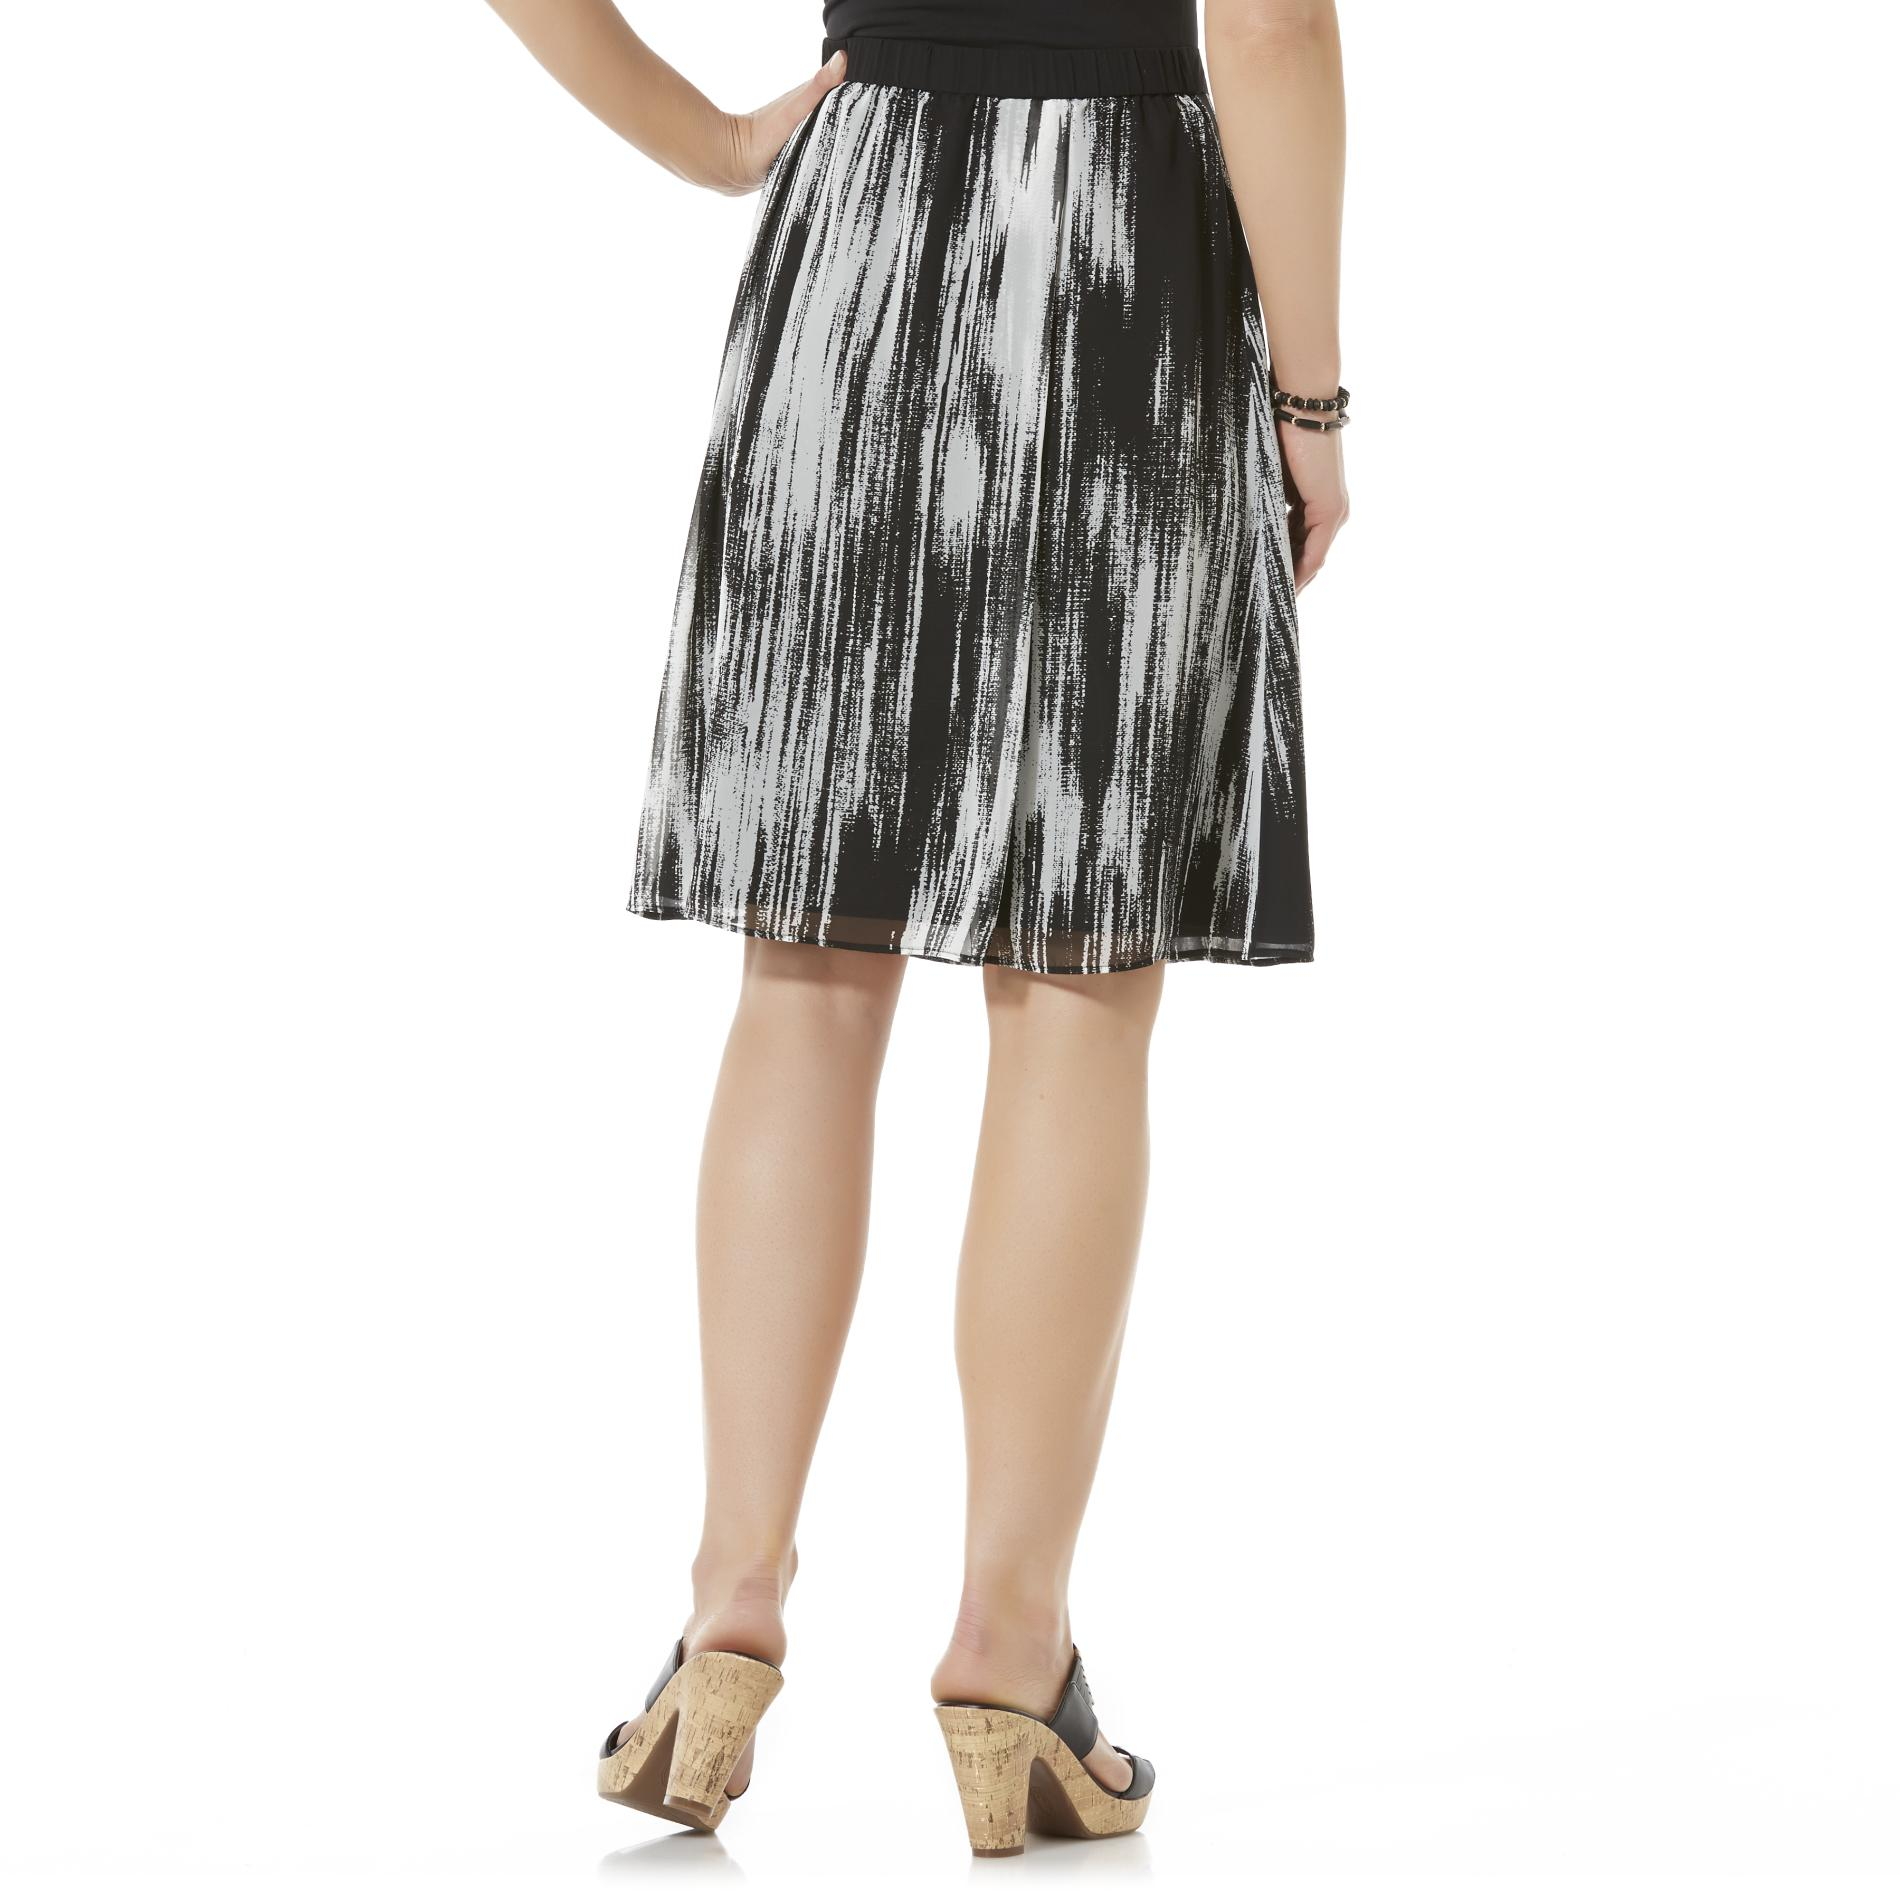 Jaclyn Smith Women's Skirt - Abstract Print